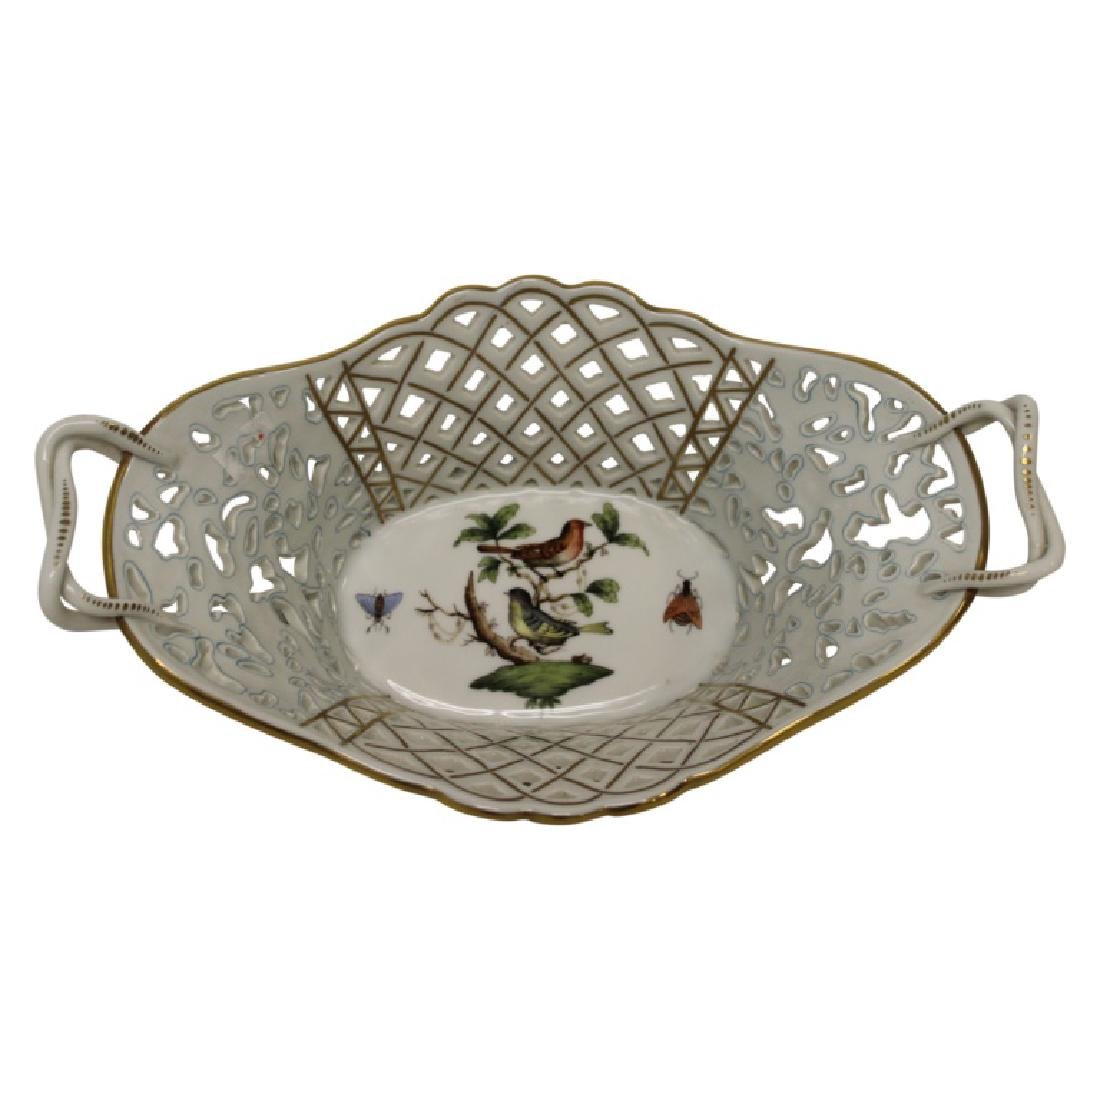 Herend Porcelain Handled Basket